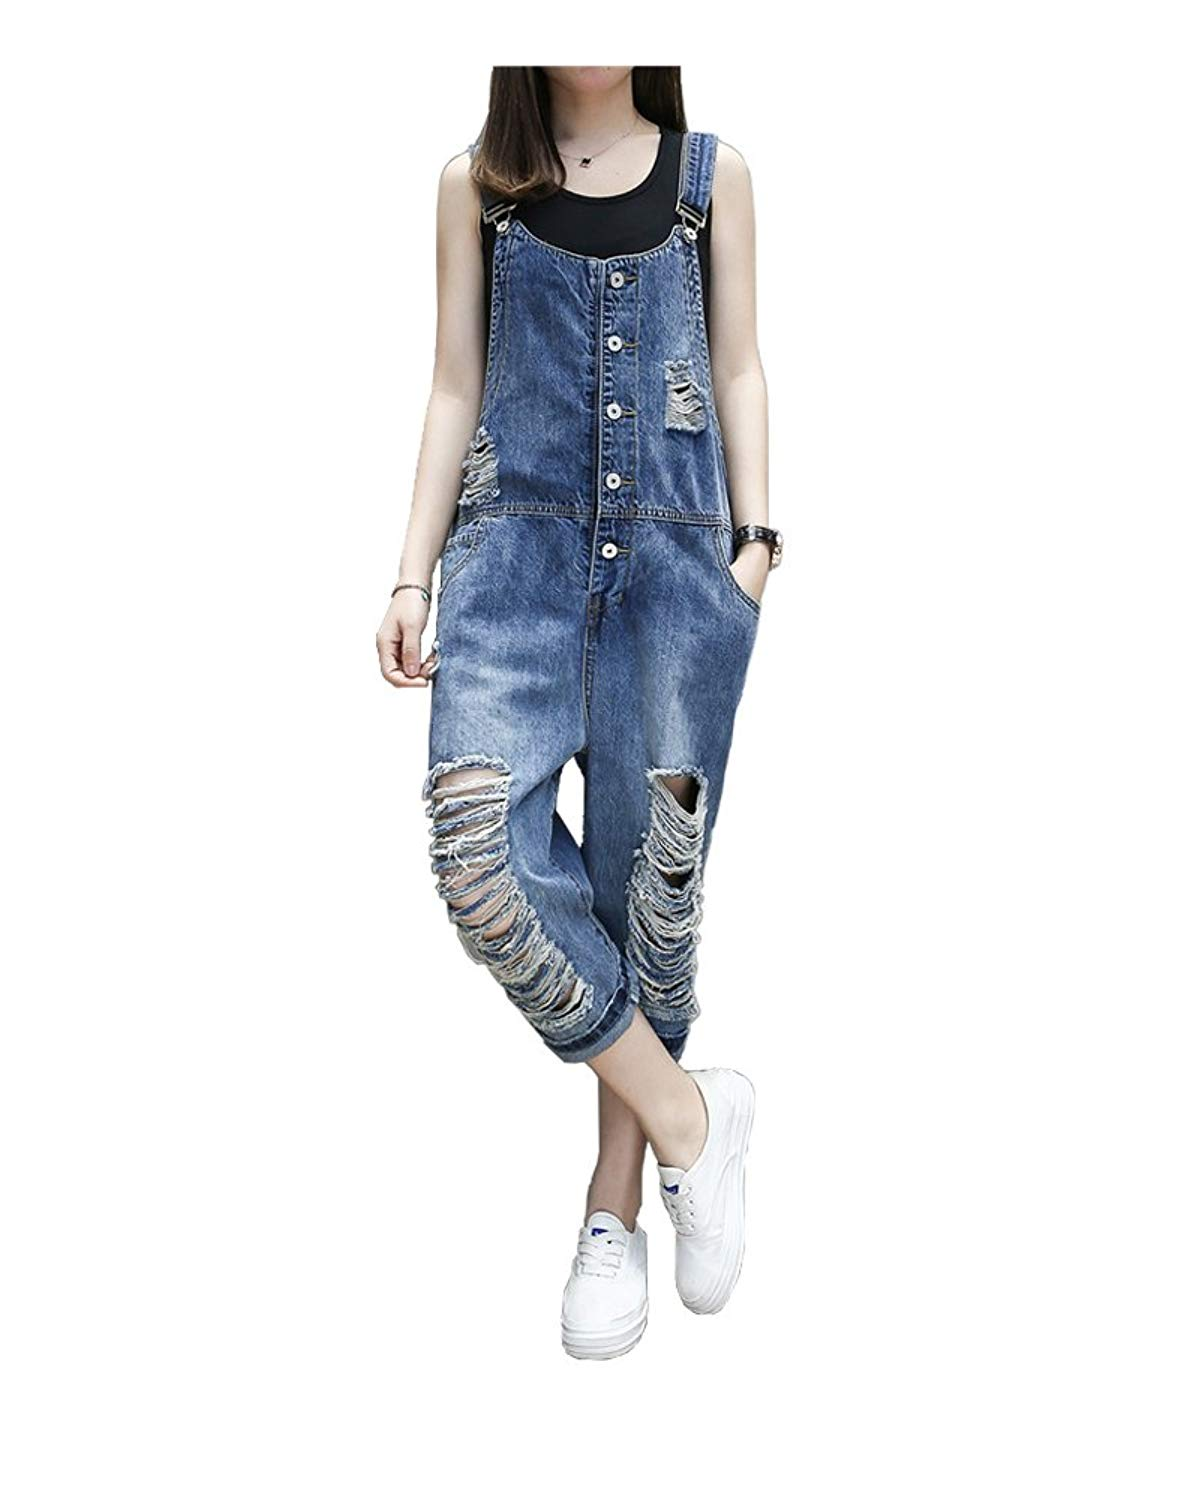 92397587a99 Get Quotations · yiboolai Overalls for Women Baggy Denim Overalls Jumpsuit  Sleeveless Romper Harem Jeans Pants